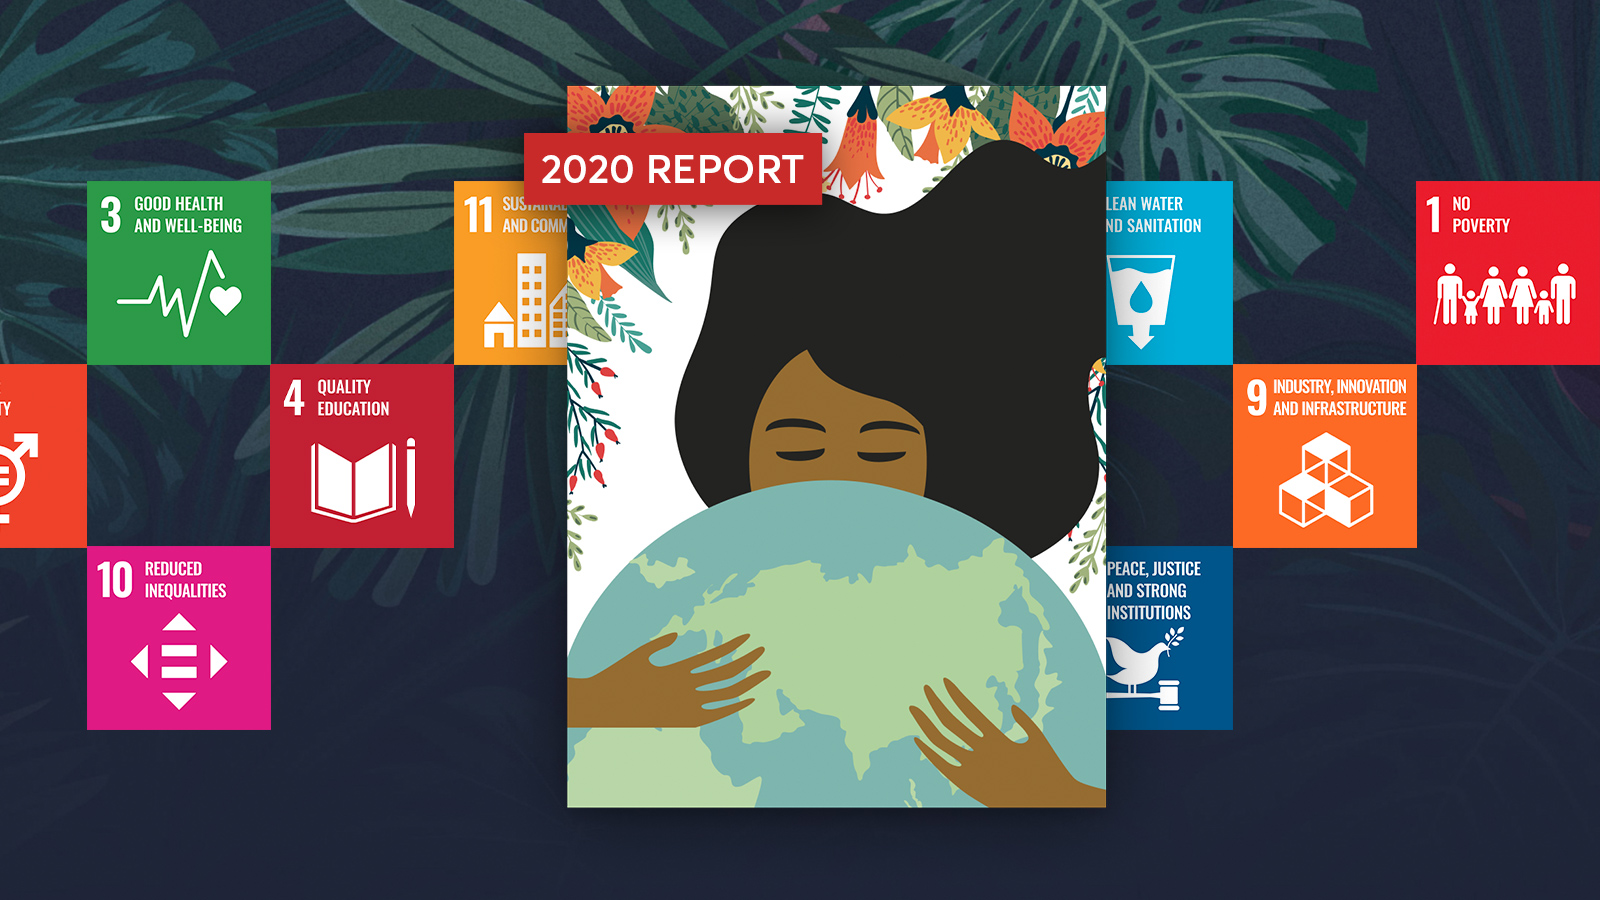 The Key to Change: Women's Rights Organizations and the Sustainable Development Goals (SDGs)